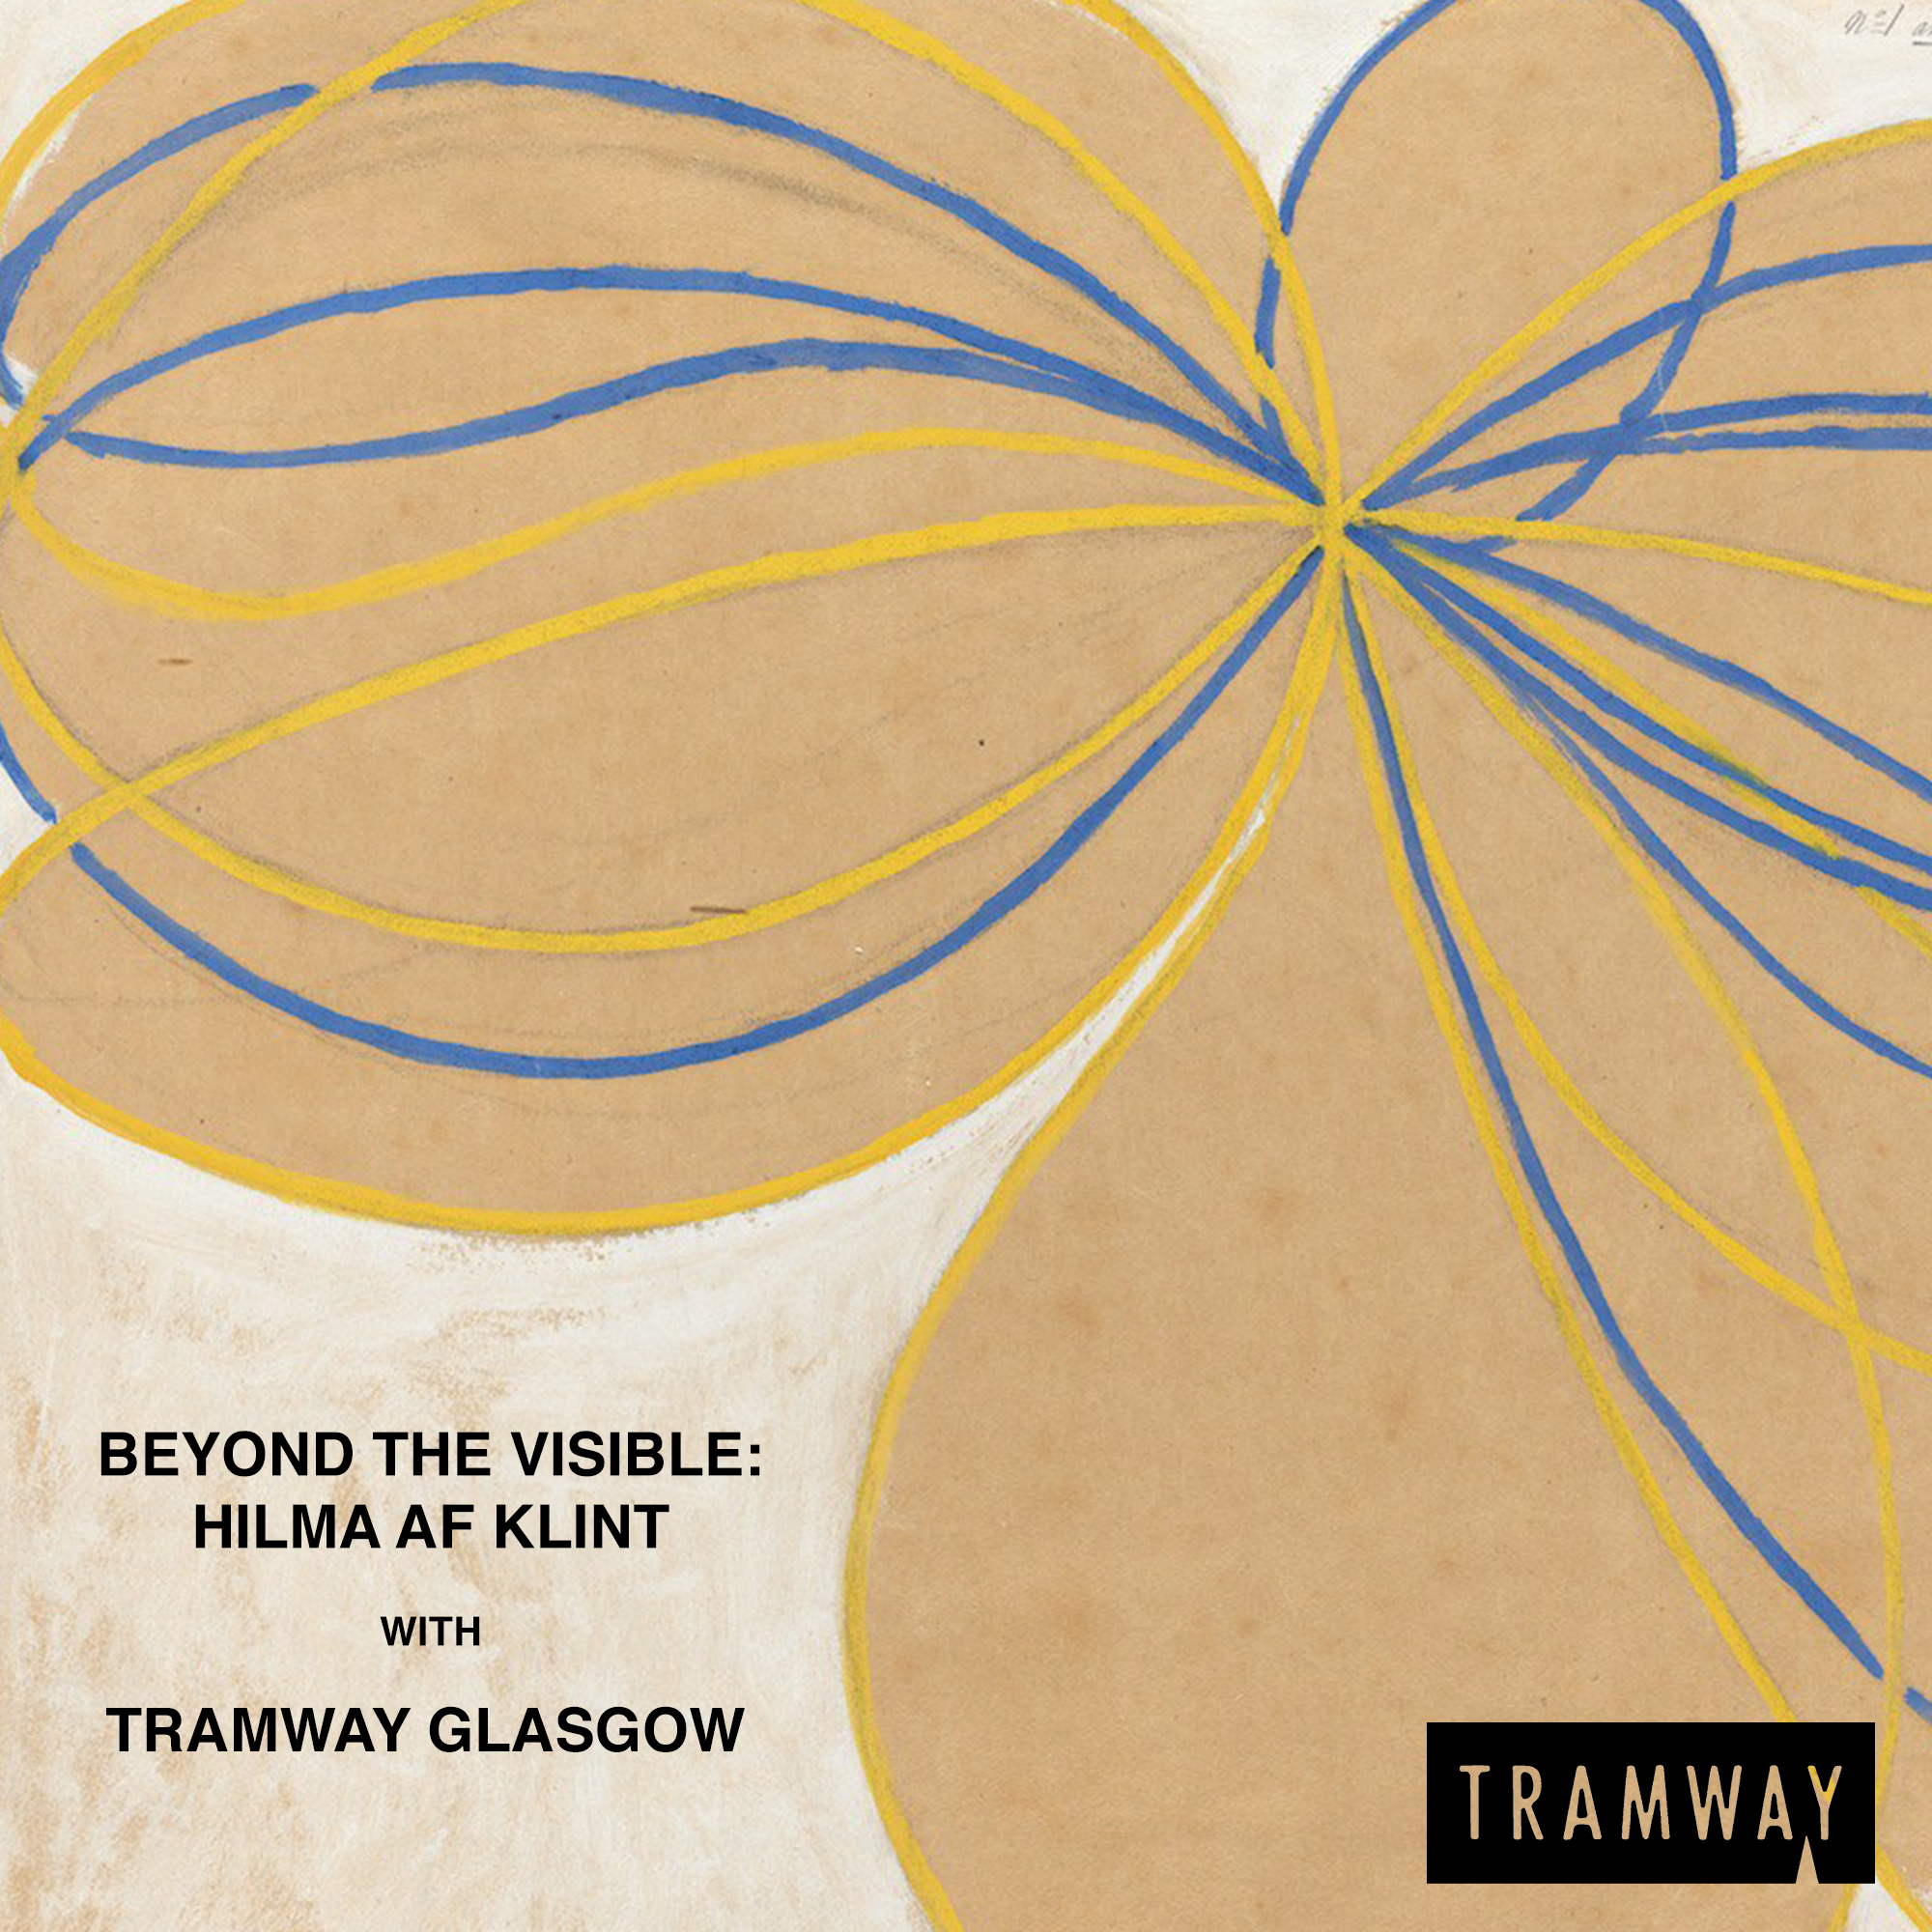 Beyond the Visible: Hilma af Klint with Tramway Glasgow